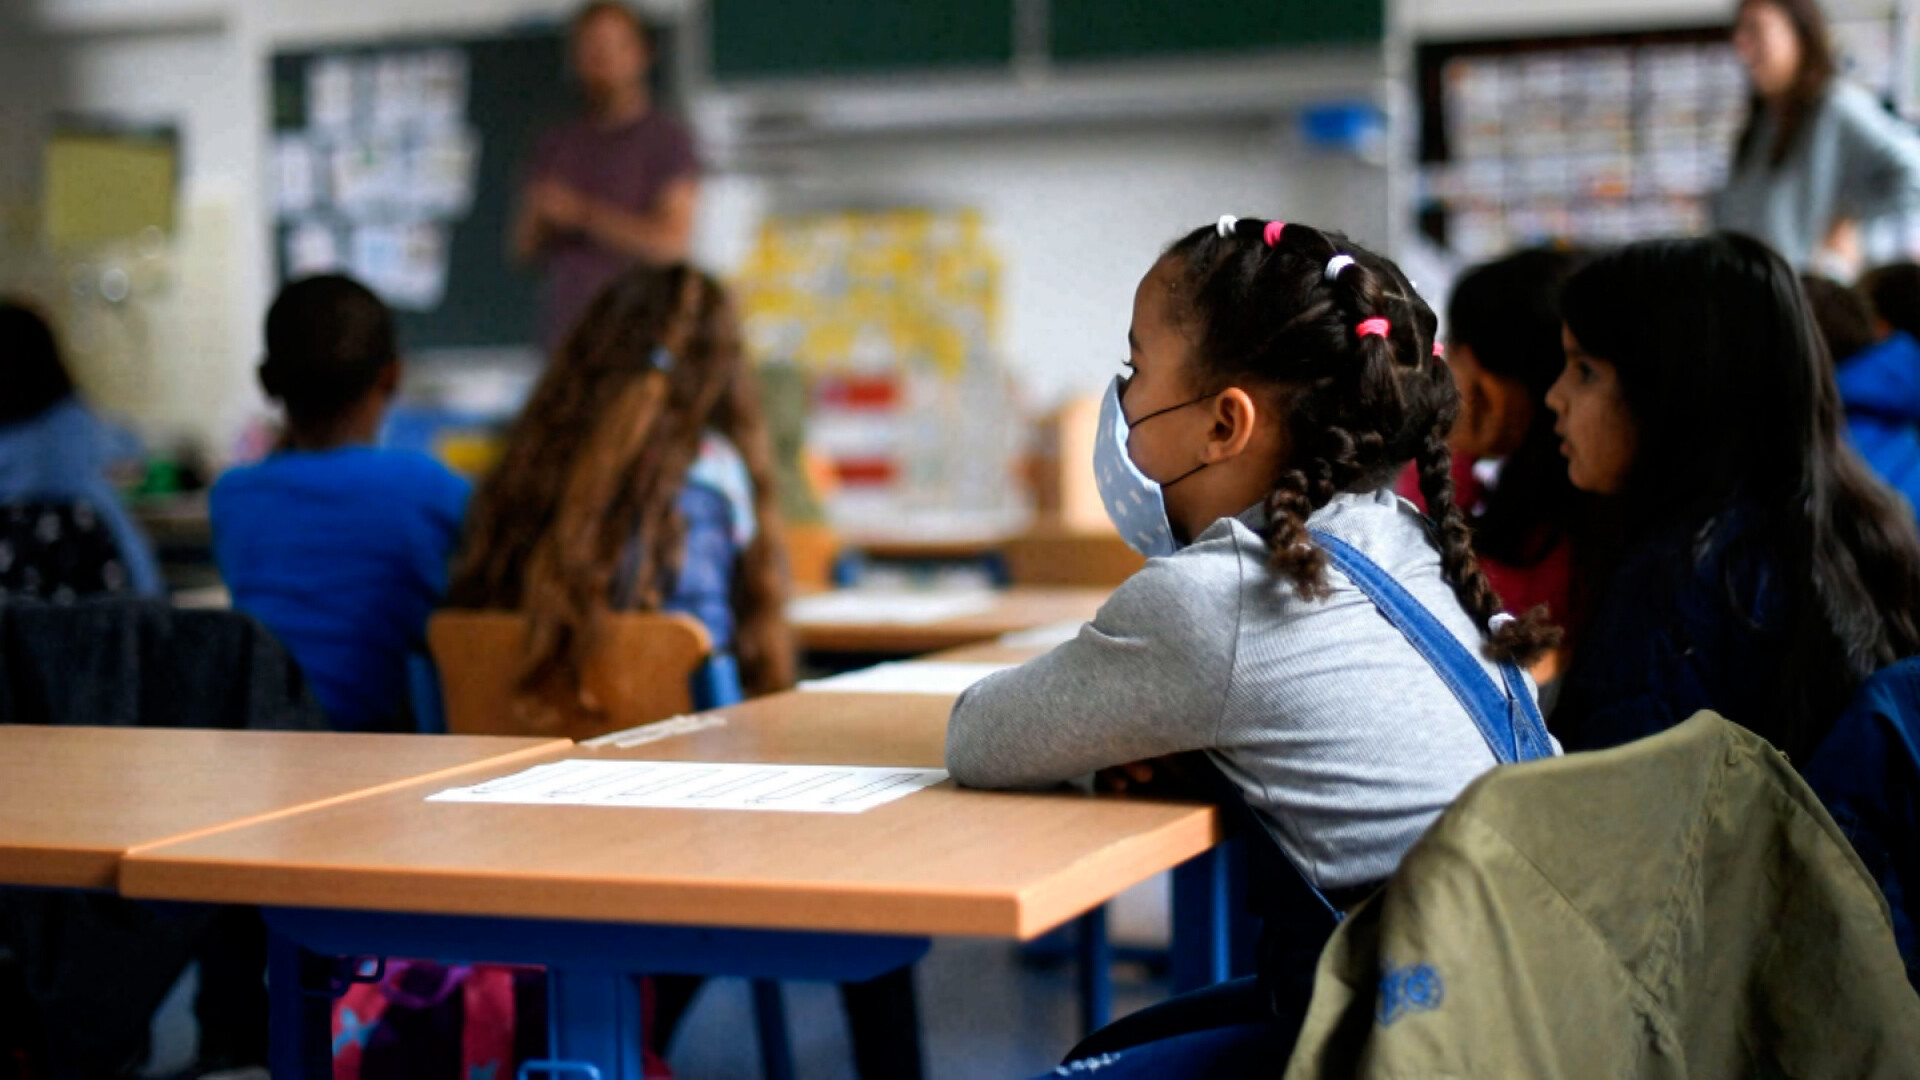 Florida's executive order does not actually ban mask mandates in schools, legal experts say